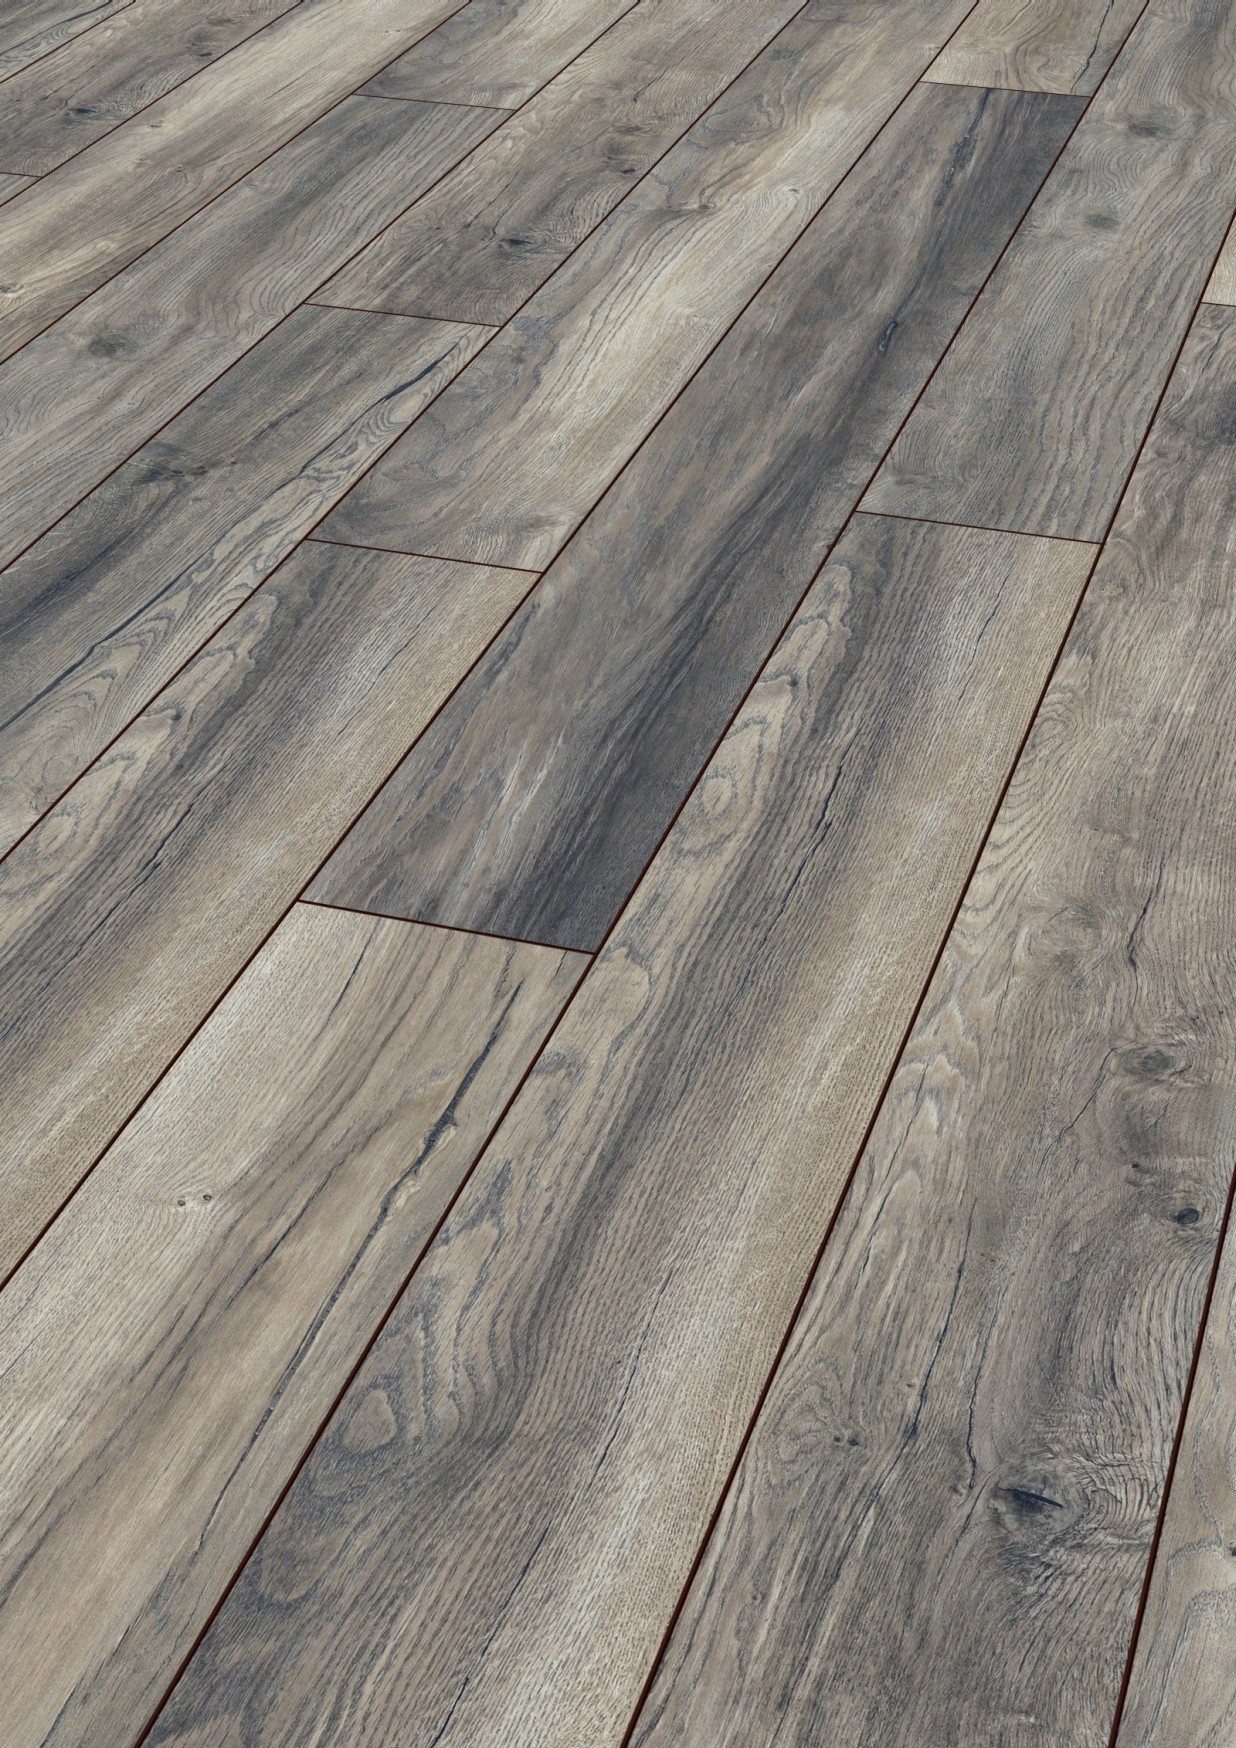 hardwood flooring sizes of new best drapery stores toronto fitspired me for full size of bedroom fabulous discount hardwood flooring 0 floor brampton 25 toronto laminate engineered bamboo